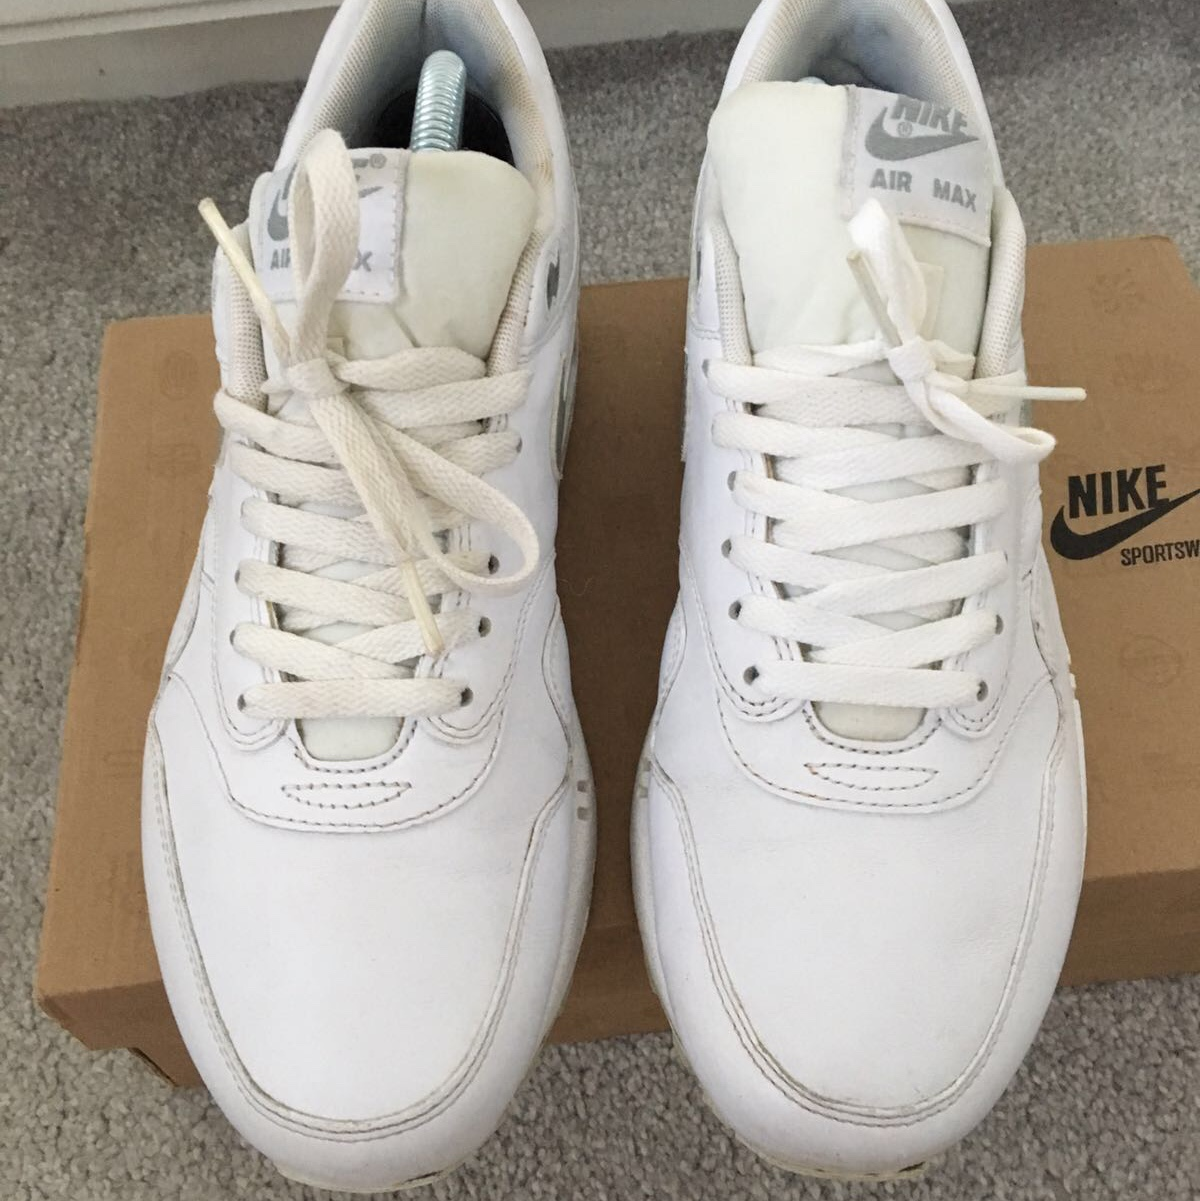 Nike Air max 1 premium White leather with metallic Depop